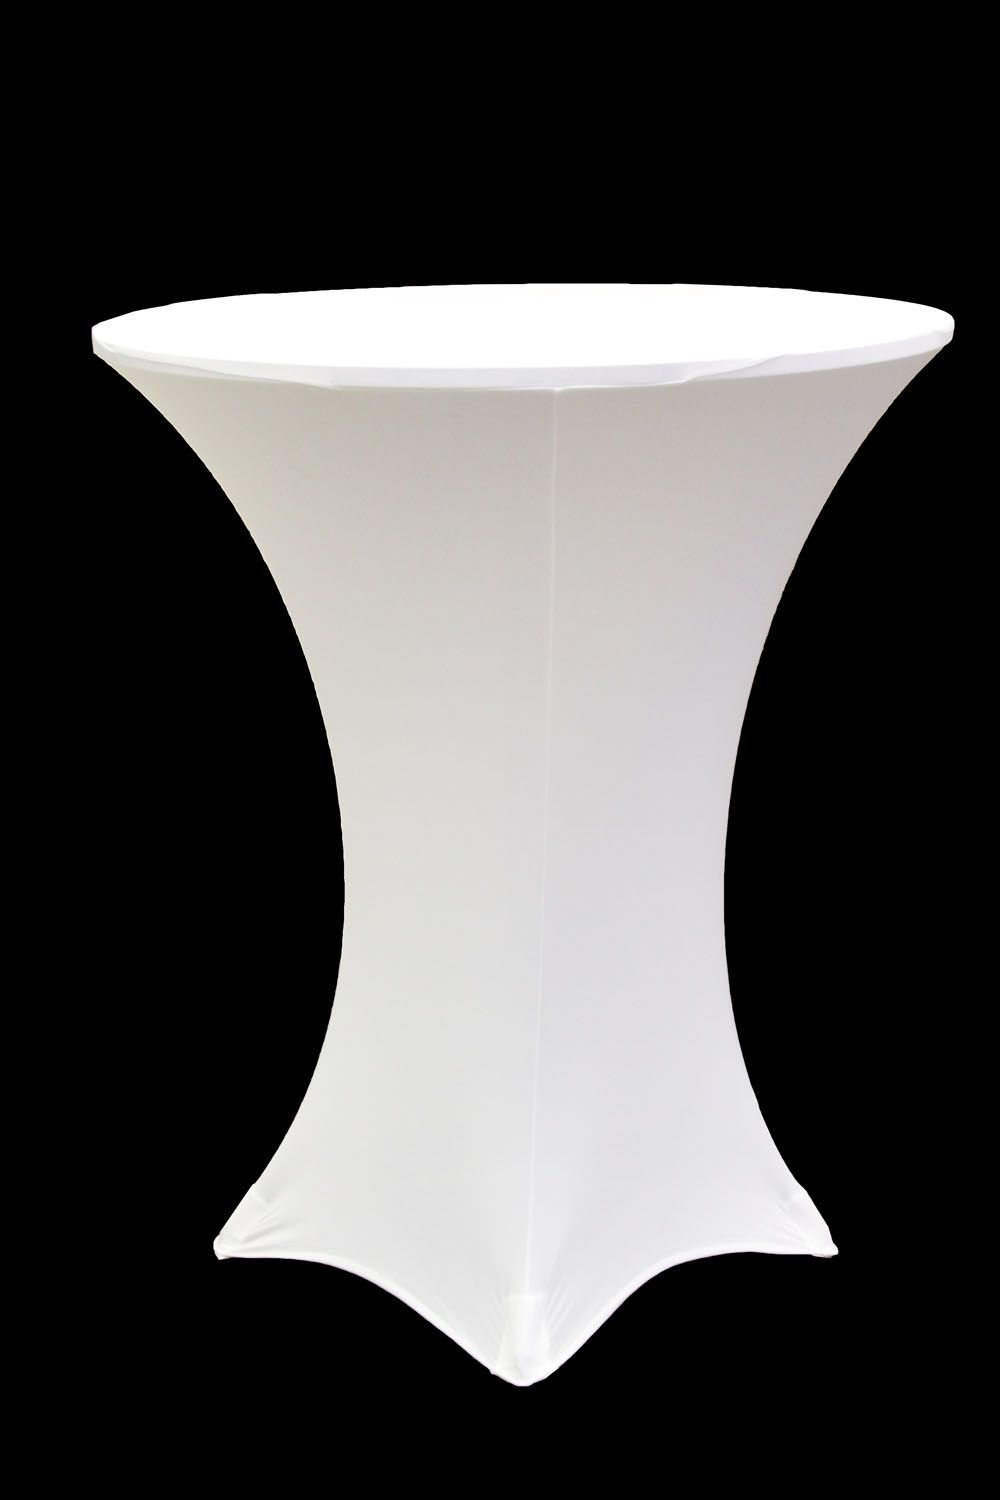 Spandex Cocktail Table Covers - Spandex cocktail table cover 36 round white